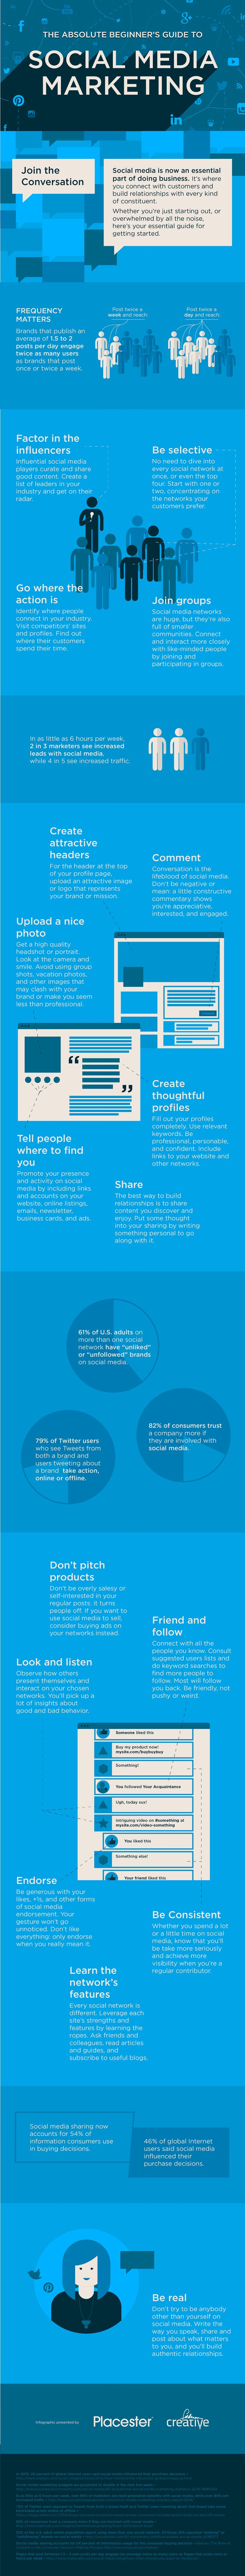 The-Absolute-Beginners-Guide-to-Social-Media-Marketing-Infographic-Juntae-DeLane #socialmedia #marketing